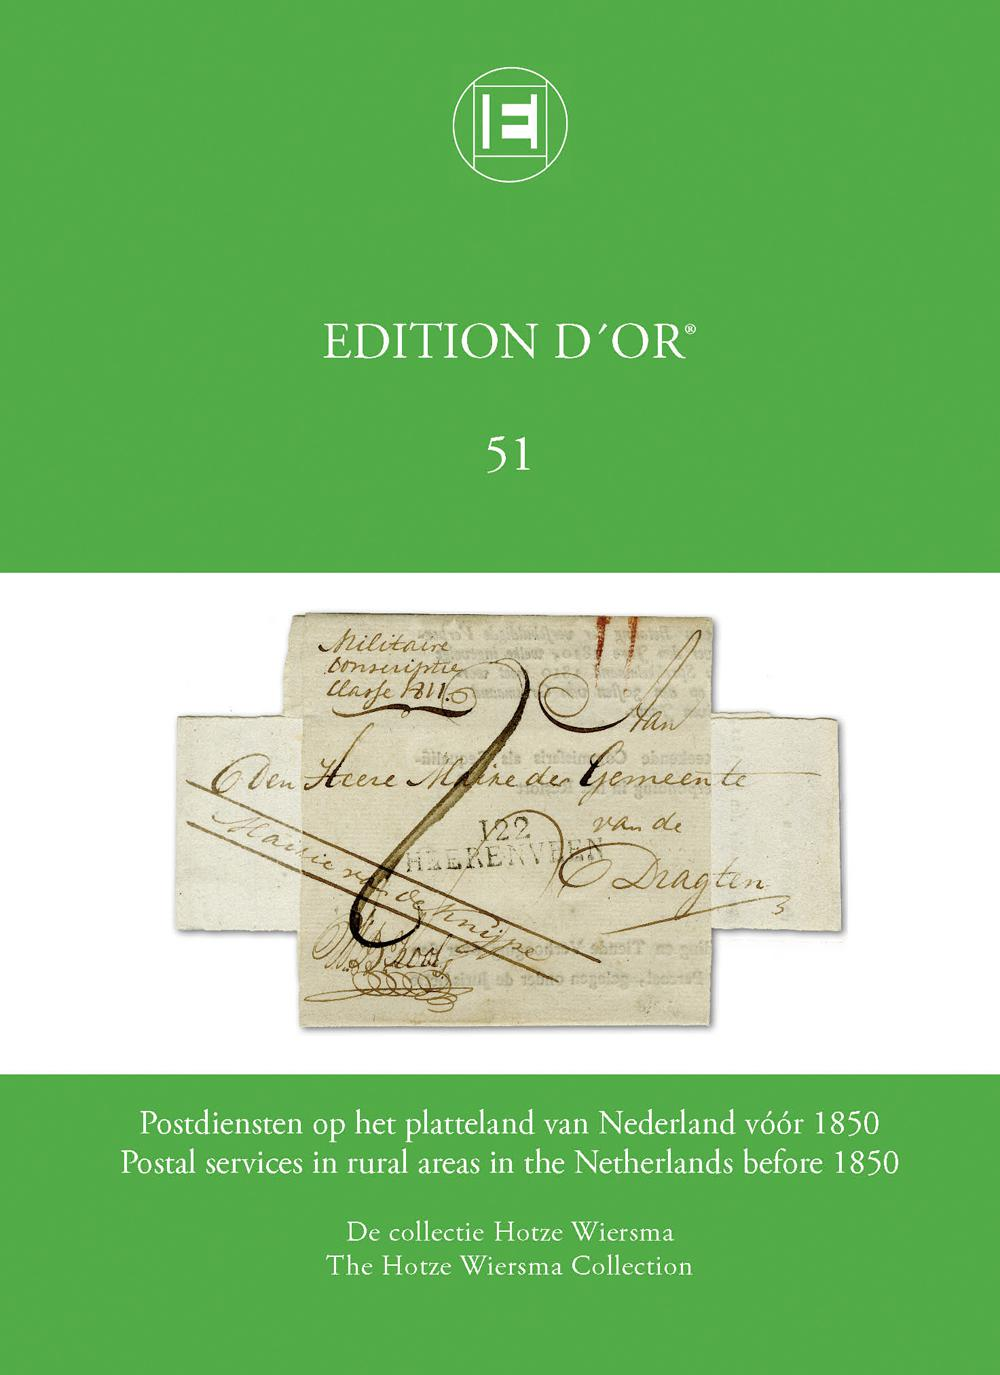 EDITION D'OR vol. 51: Postal services in rural areas of the Netherlands before 1850 • The Hotze Wiersma Collection